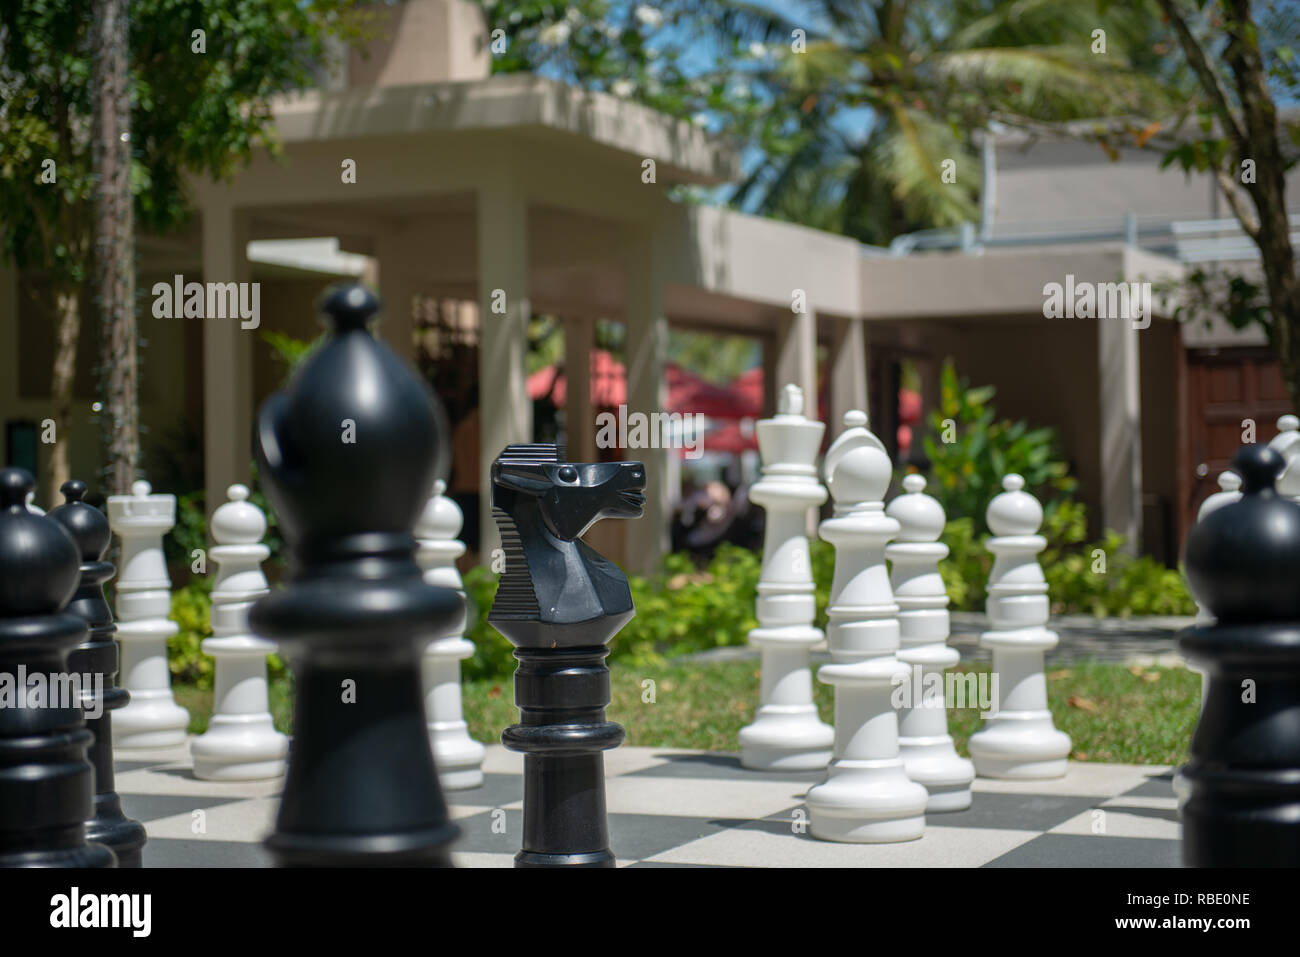 Big chessboard pieces - Stock Image